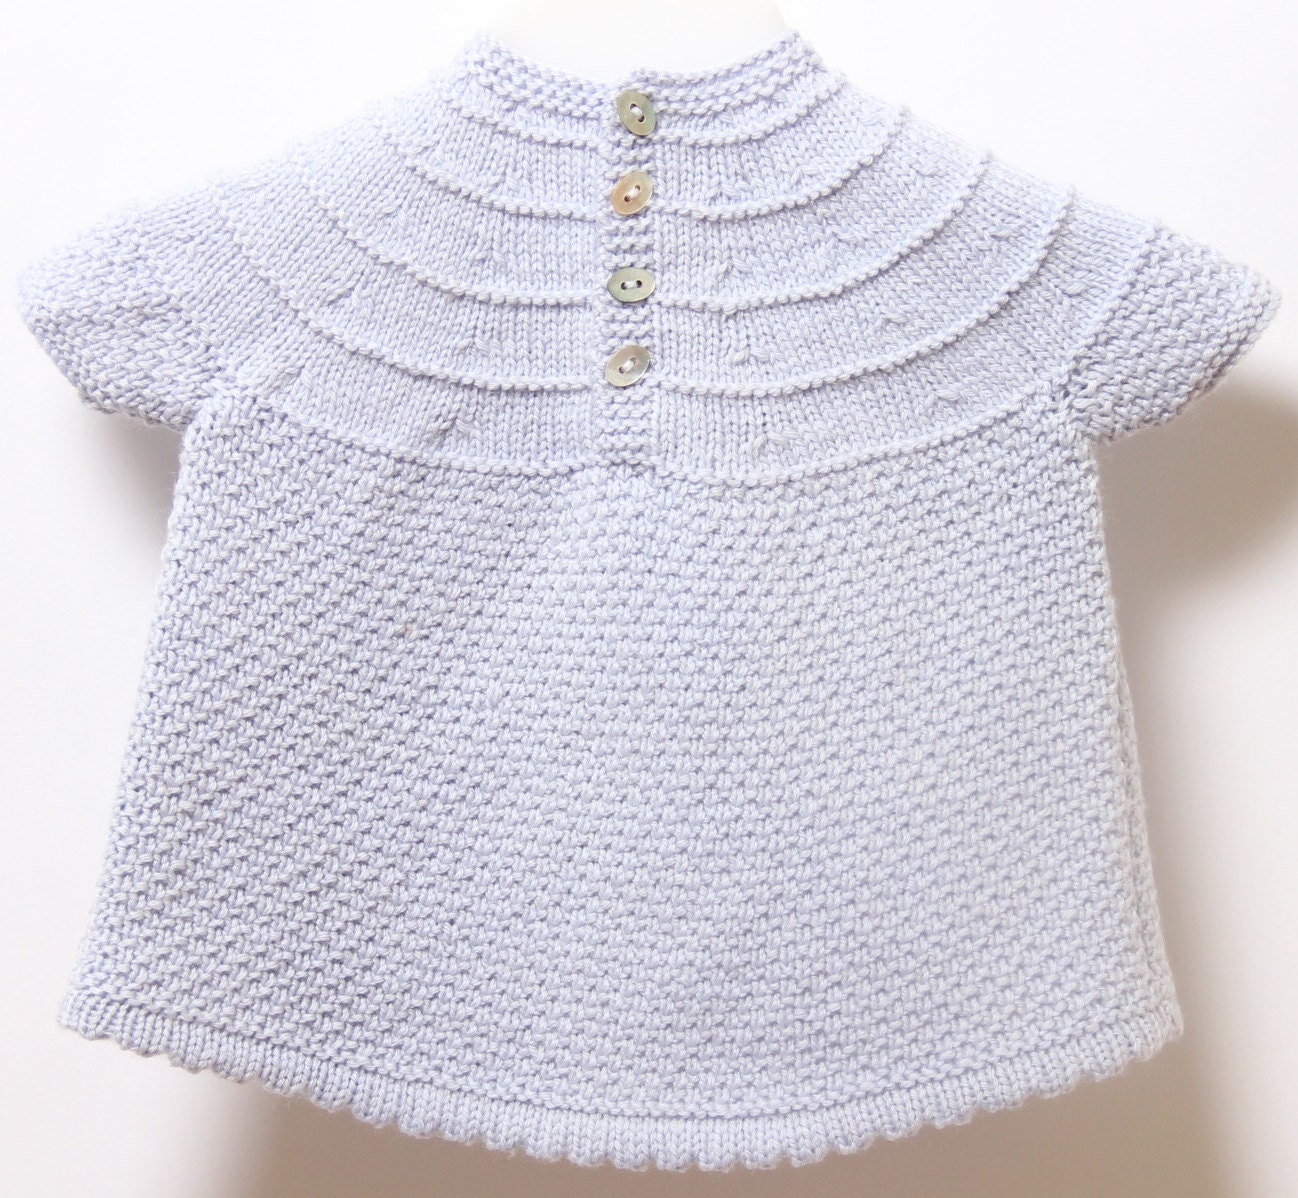 Baby Knitting Patterns With Instructions : Baby Dress / Knitting Pattern Instructions in English ...